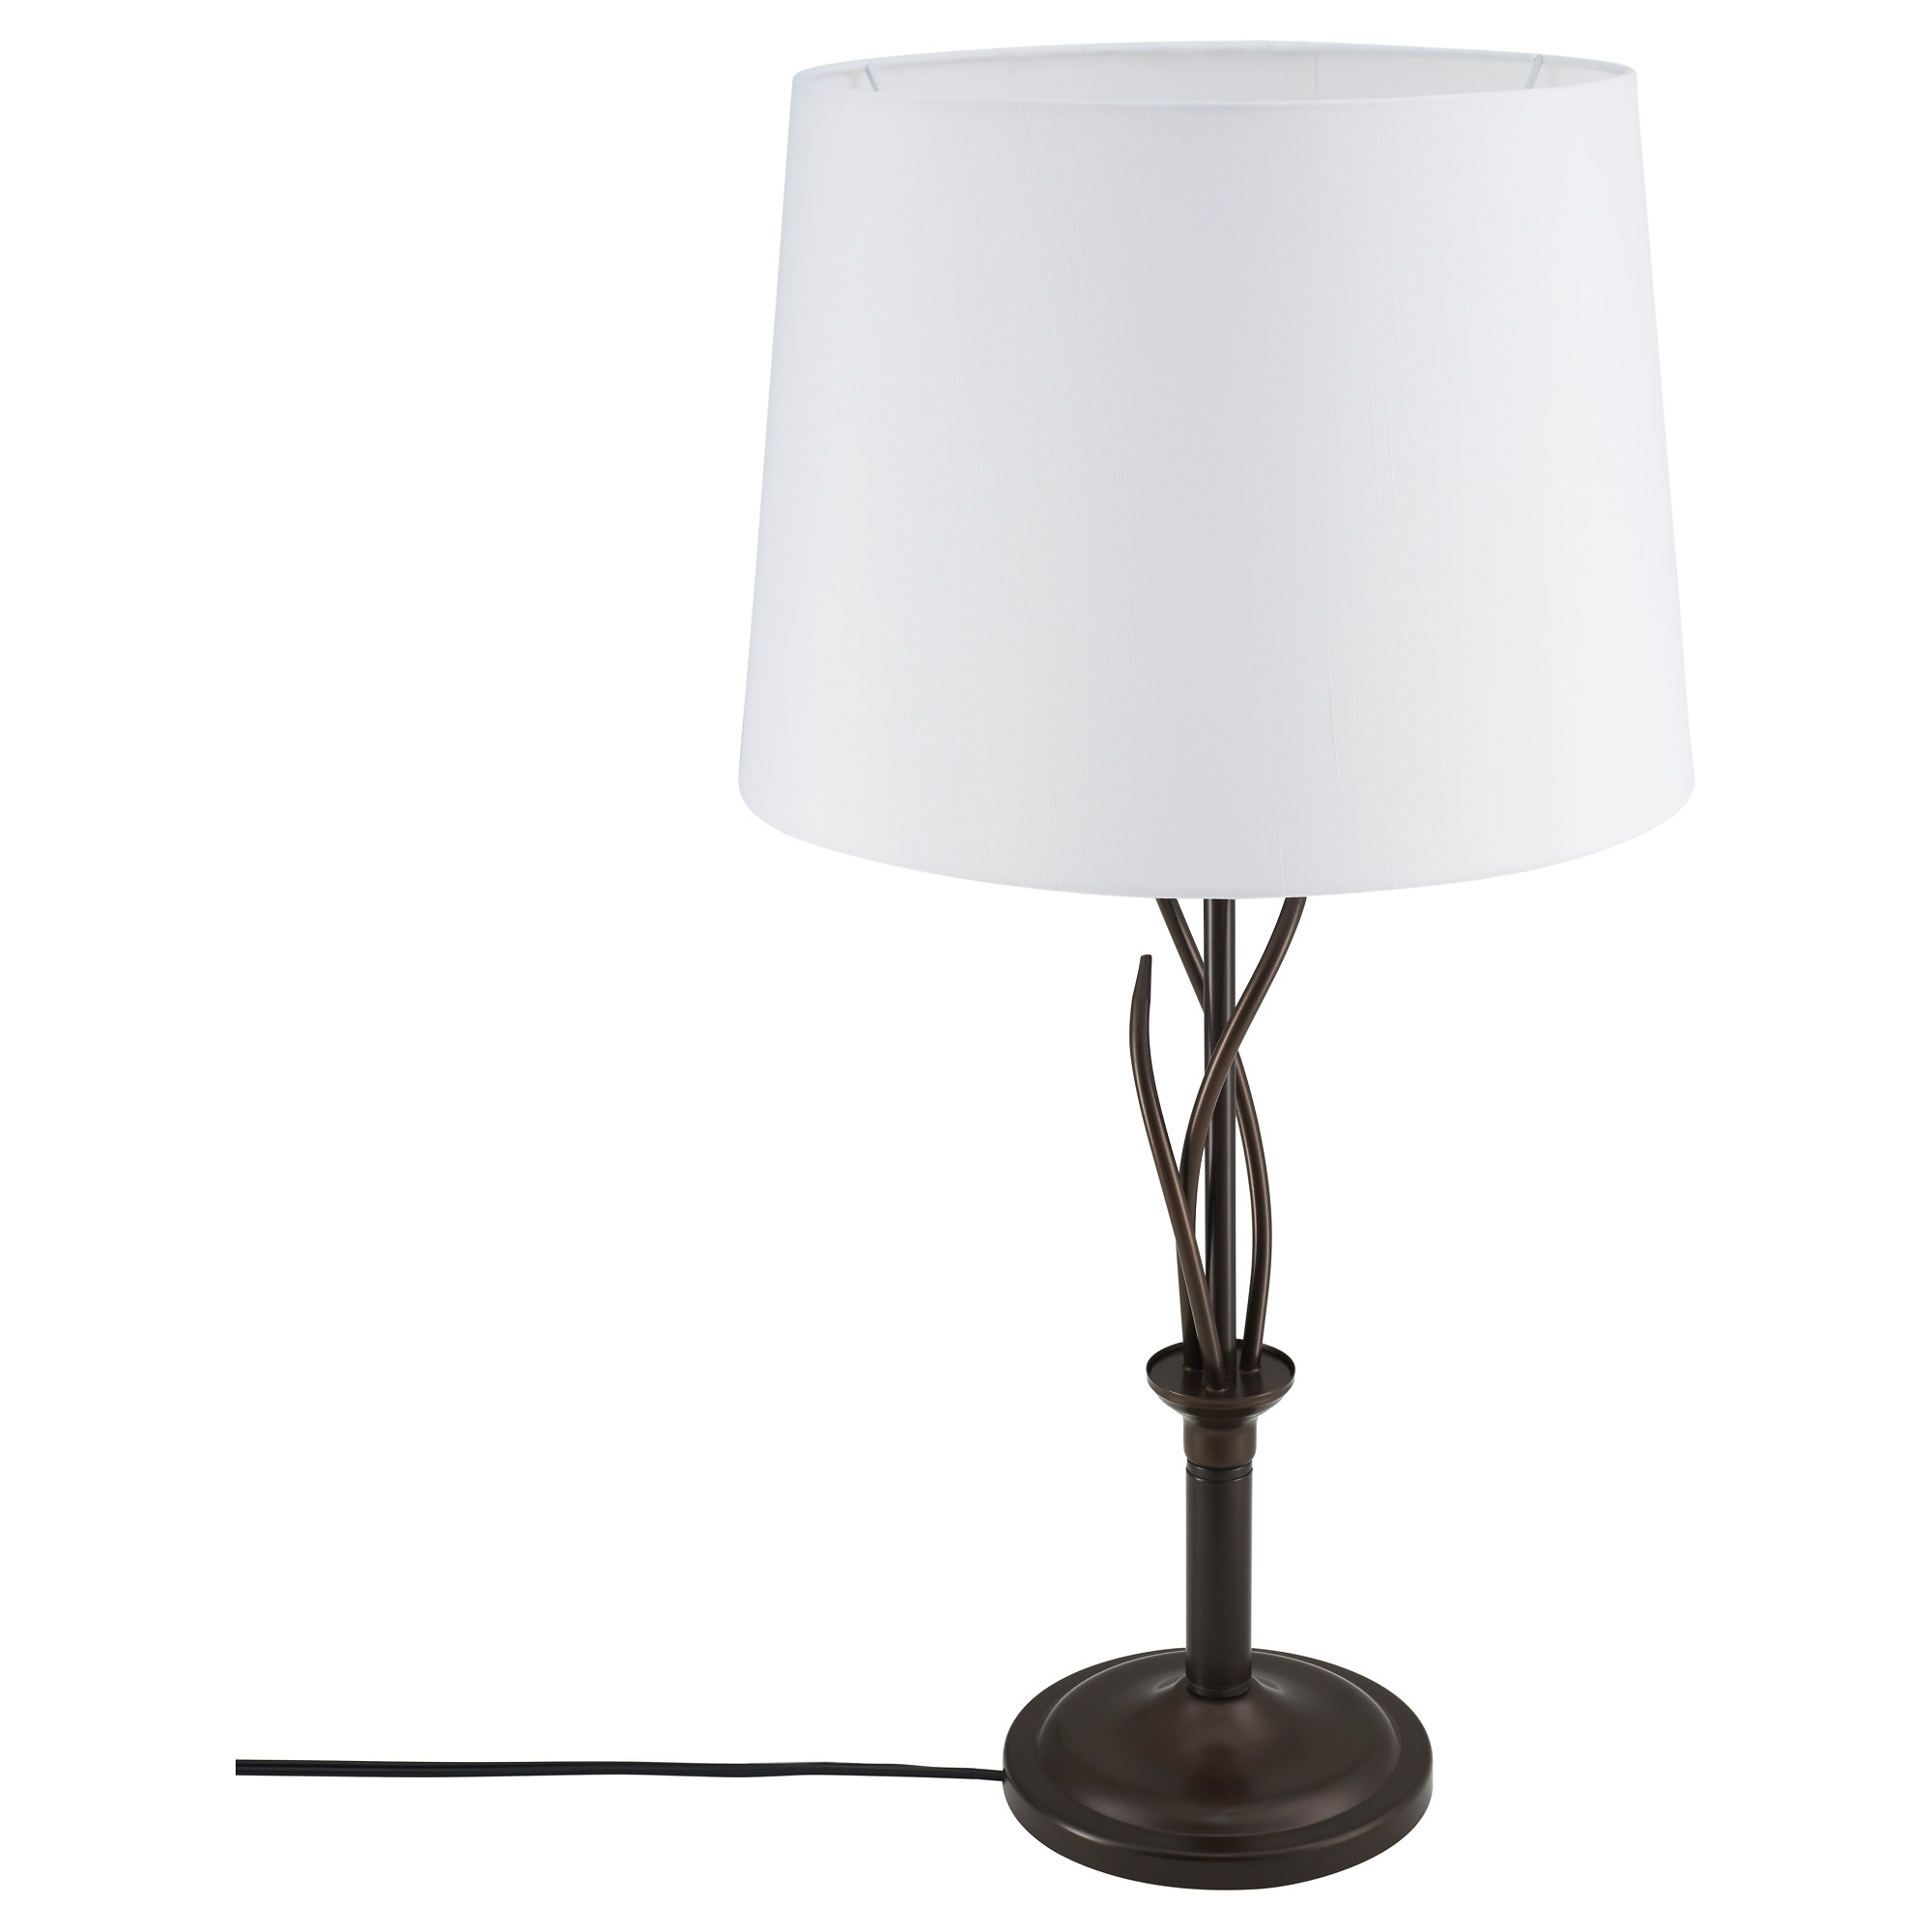 John Lewis Living Room Table Lamps Inside Newest Furniture : Contemporary Table Lamps Australia For Living Room With (View 20 of 20)